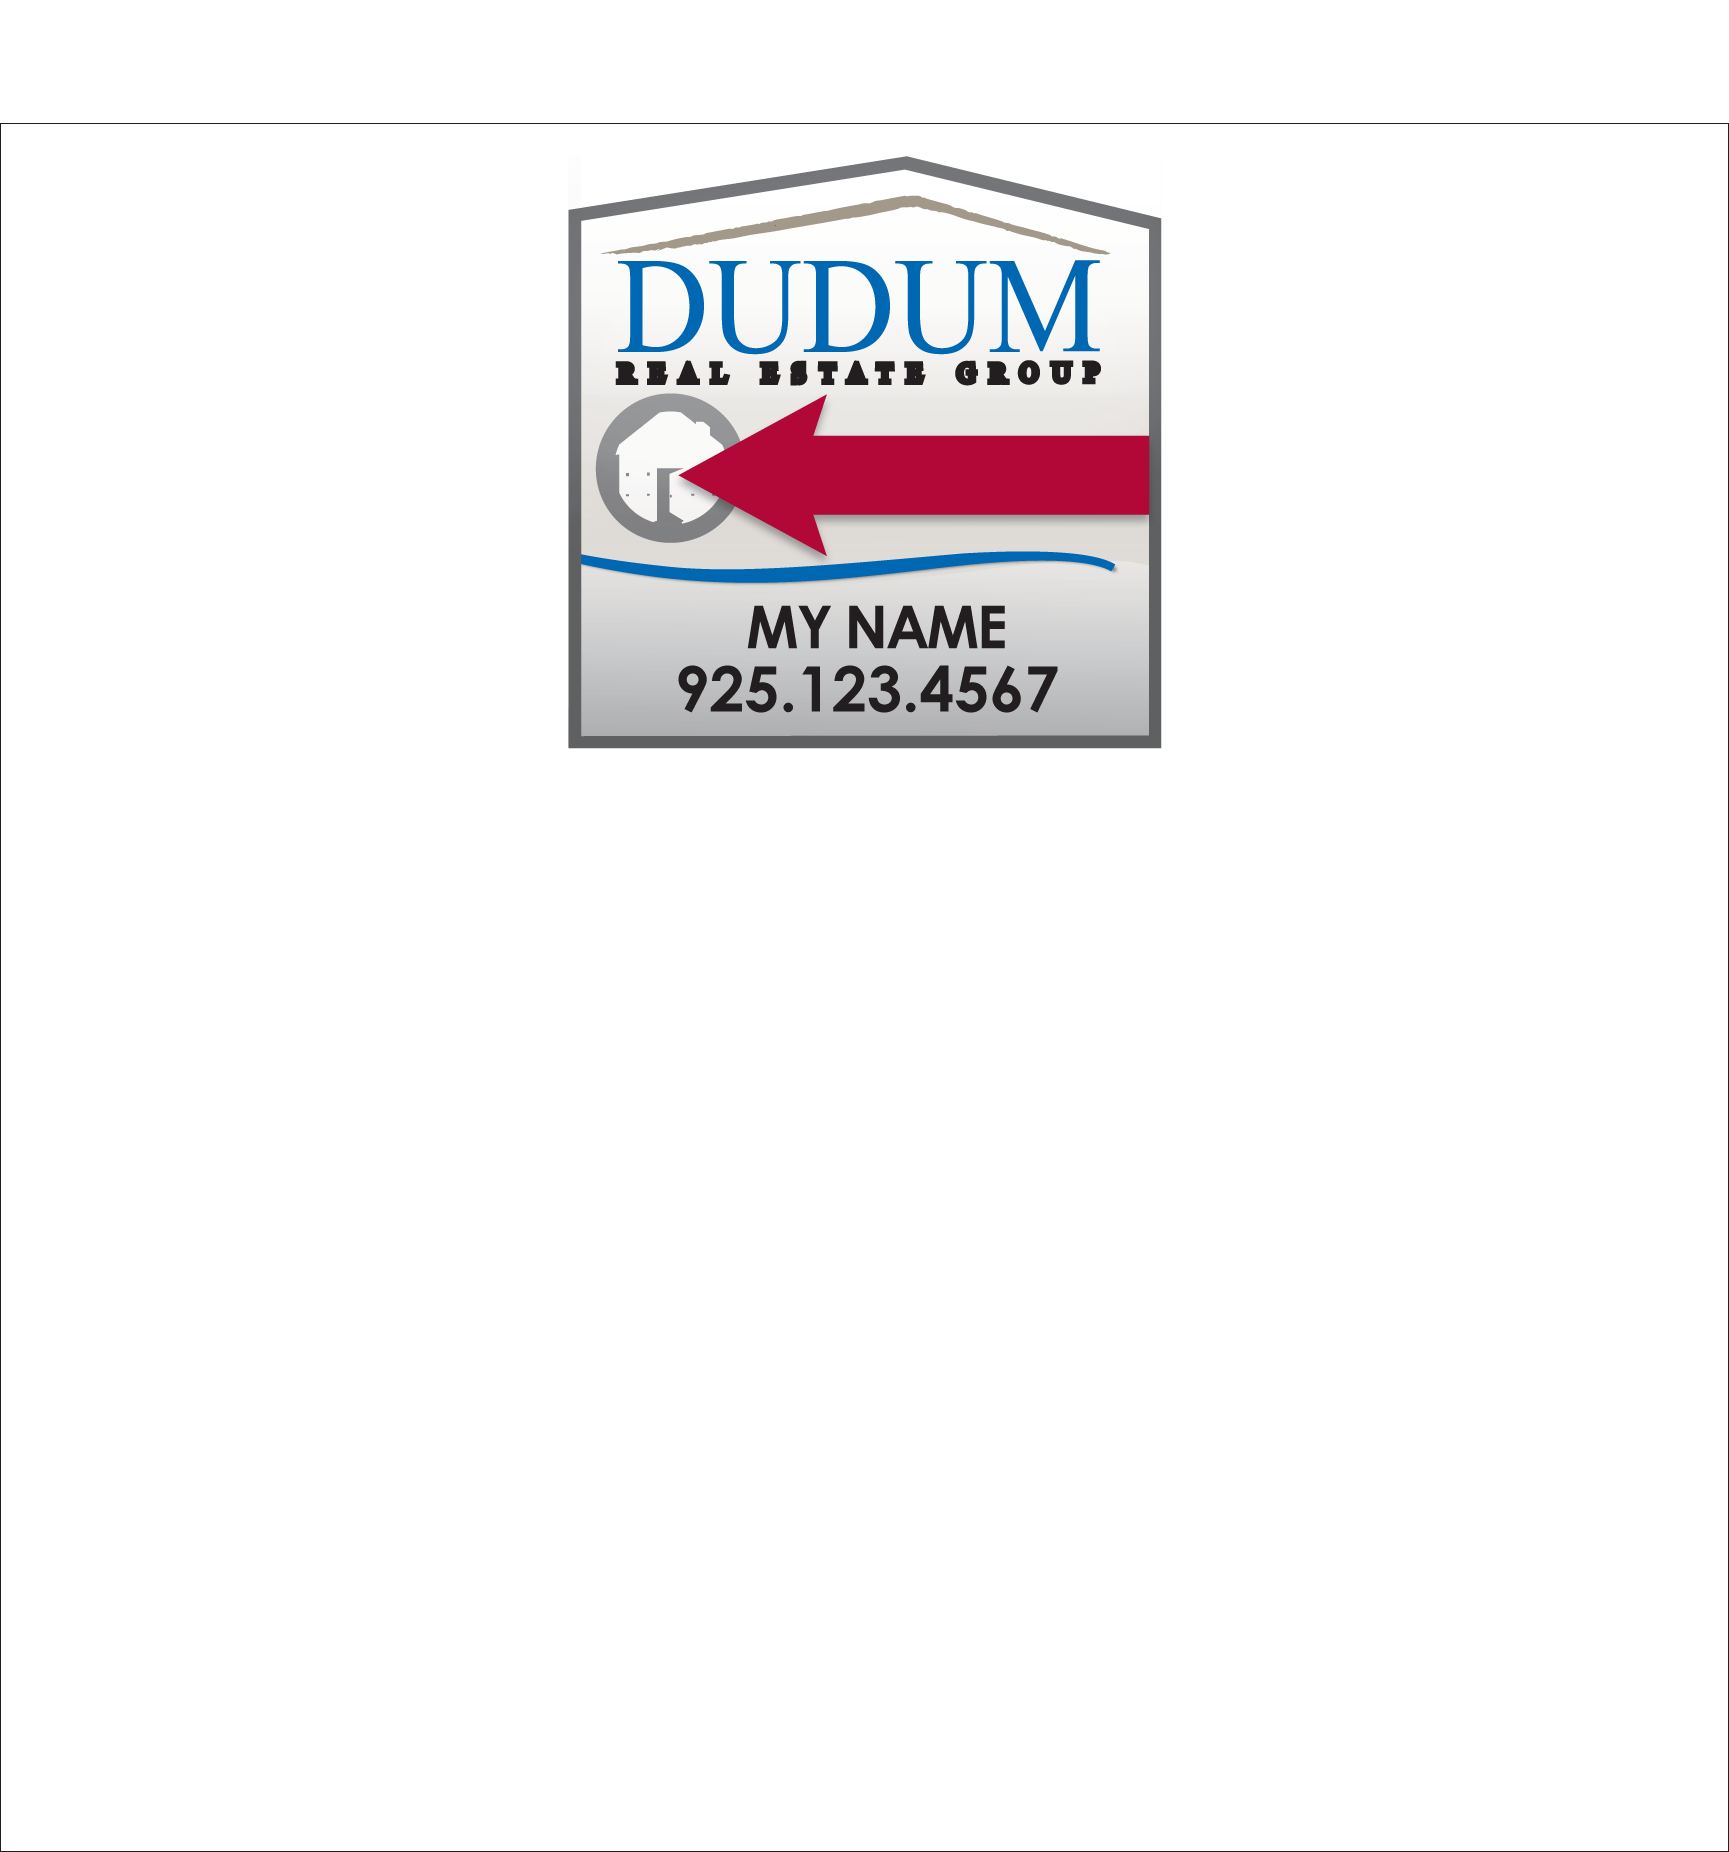 Dudum Catalog | Real Estate Signs, Yard Signs, Open House Signs